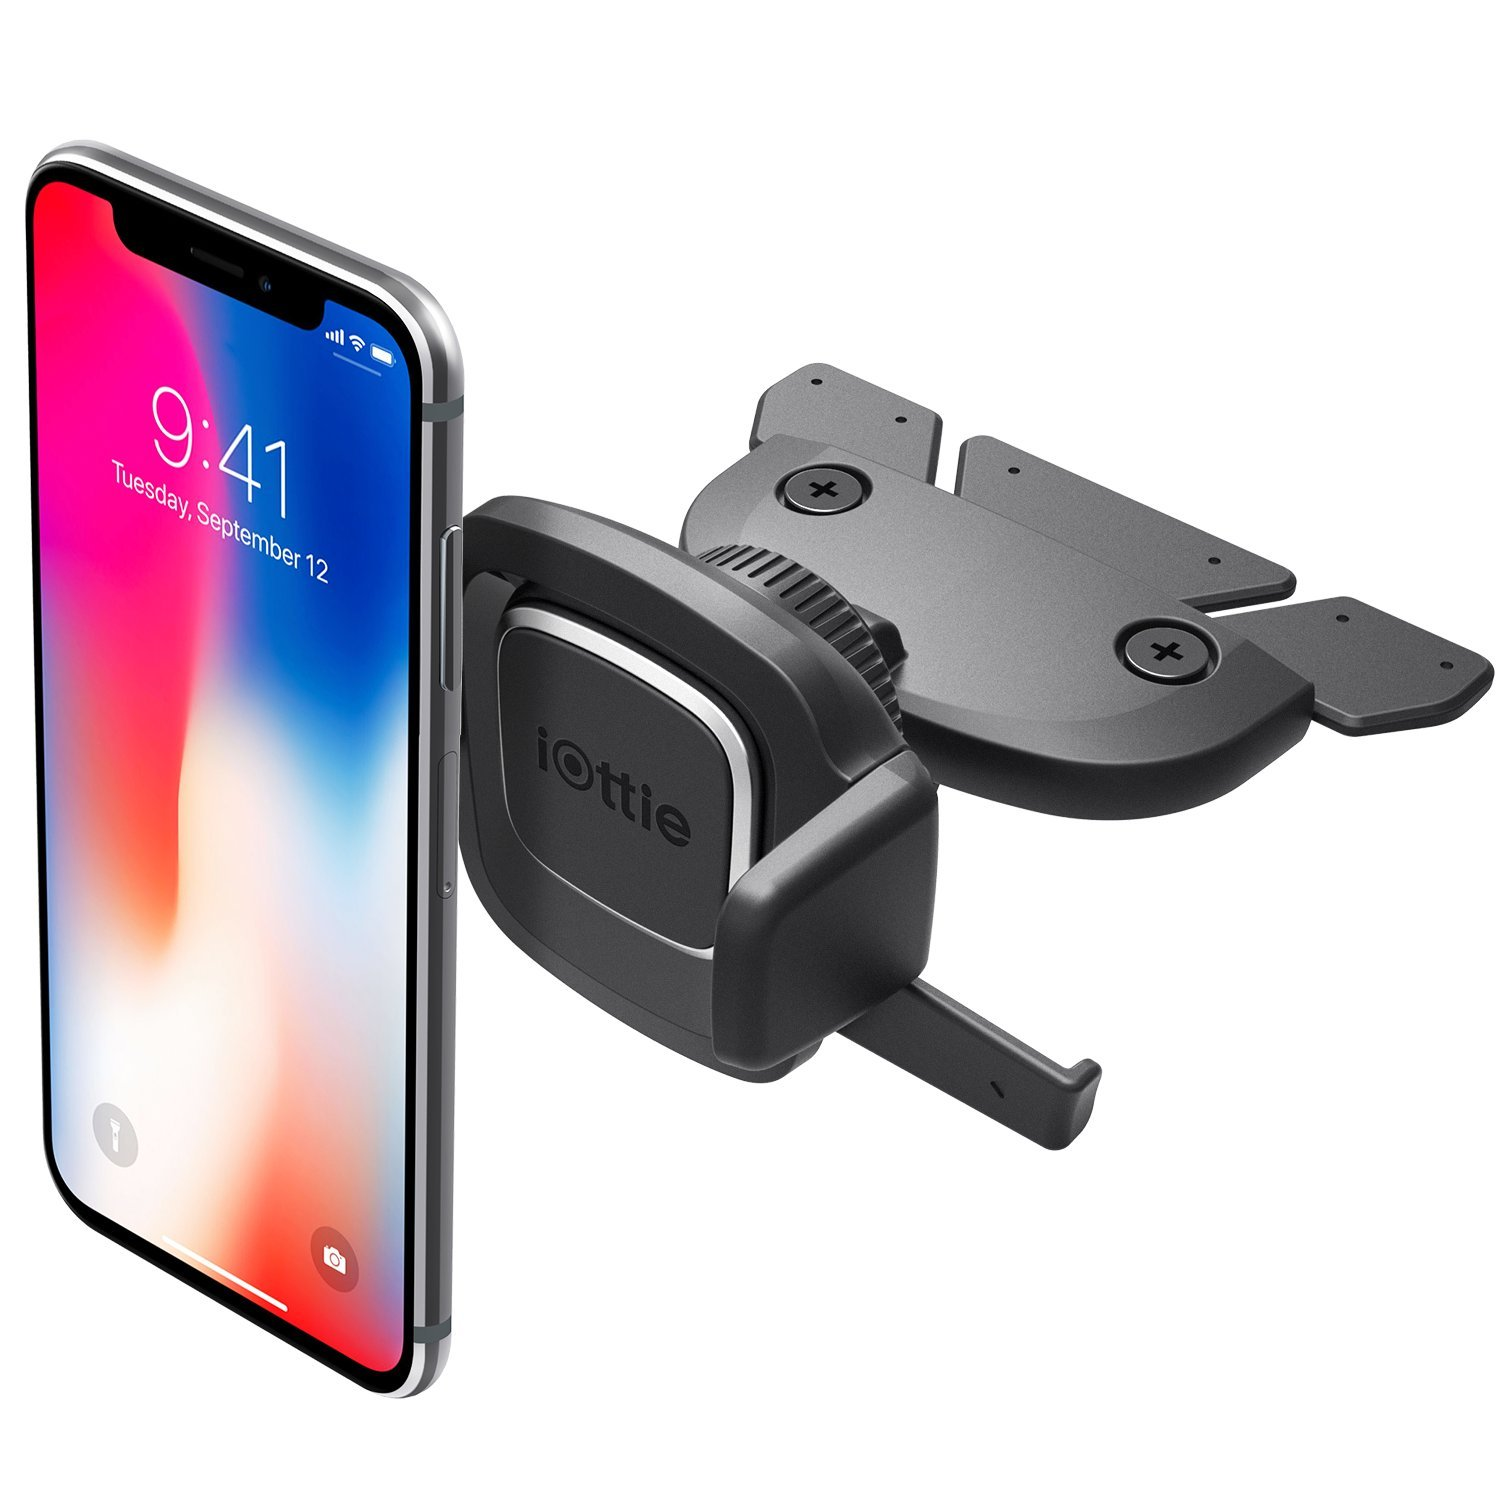 I Ottie Easy One Touch 4 Cd Slot Car Mount Phone Holder || I Phone Xs Max R 8 Plus 7 Samsung Galaxy S10 E S9 S8 Plus Edge, Note 9 & Other Smartphones by I Ottie